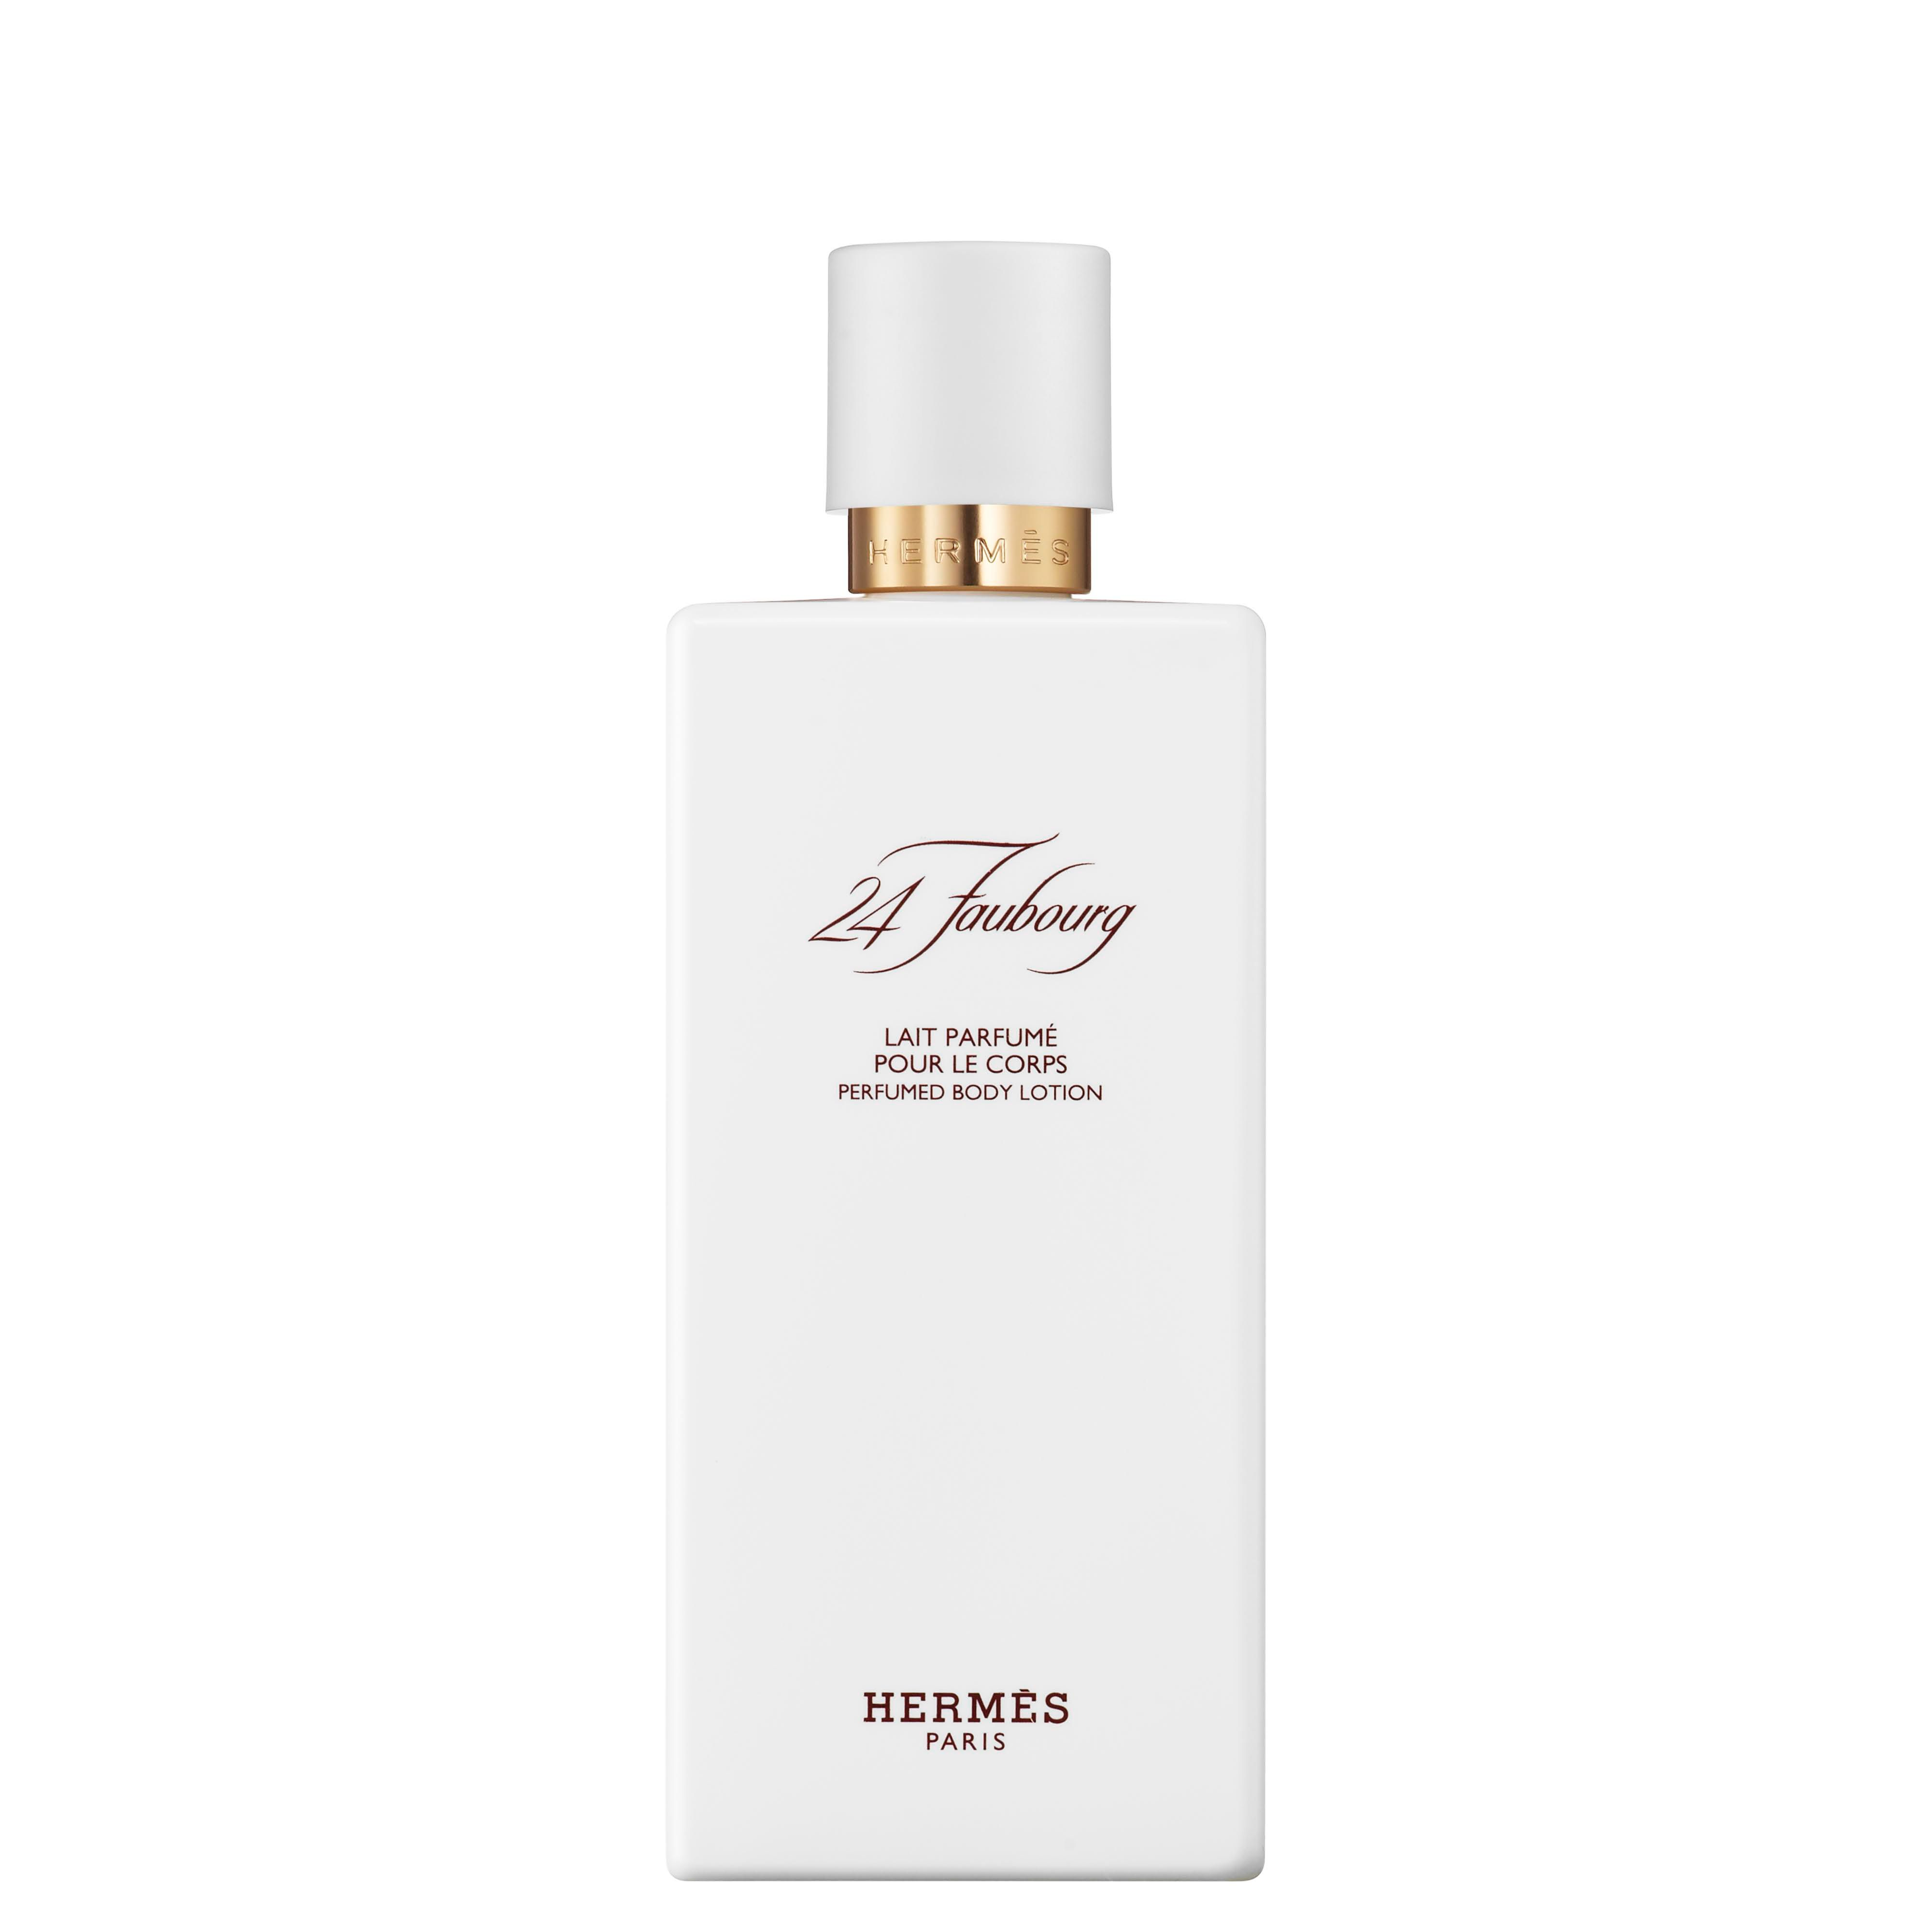 24, Faubourg Perfumed Body Lotion 200ml